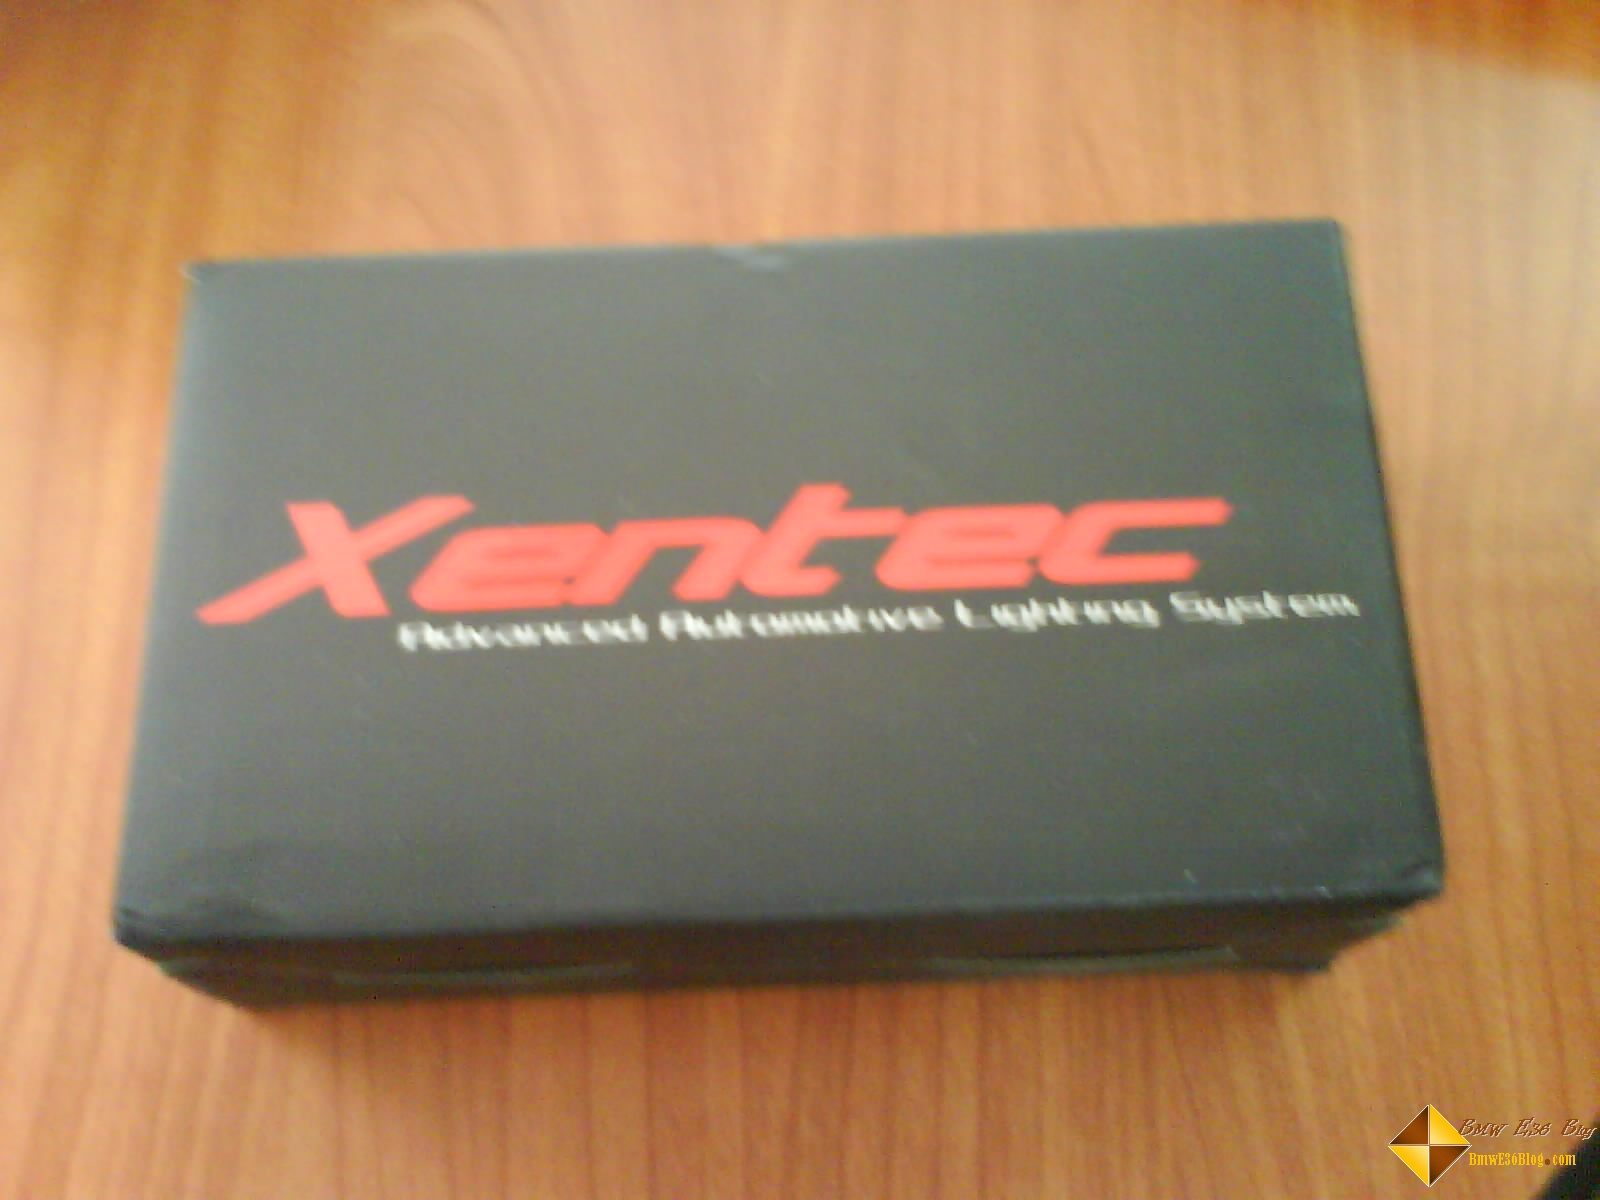 photos xentec hid review xentec hid review 01